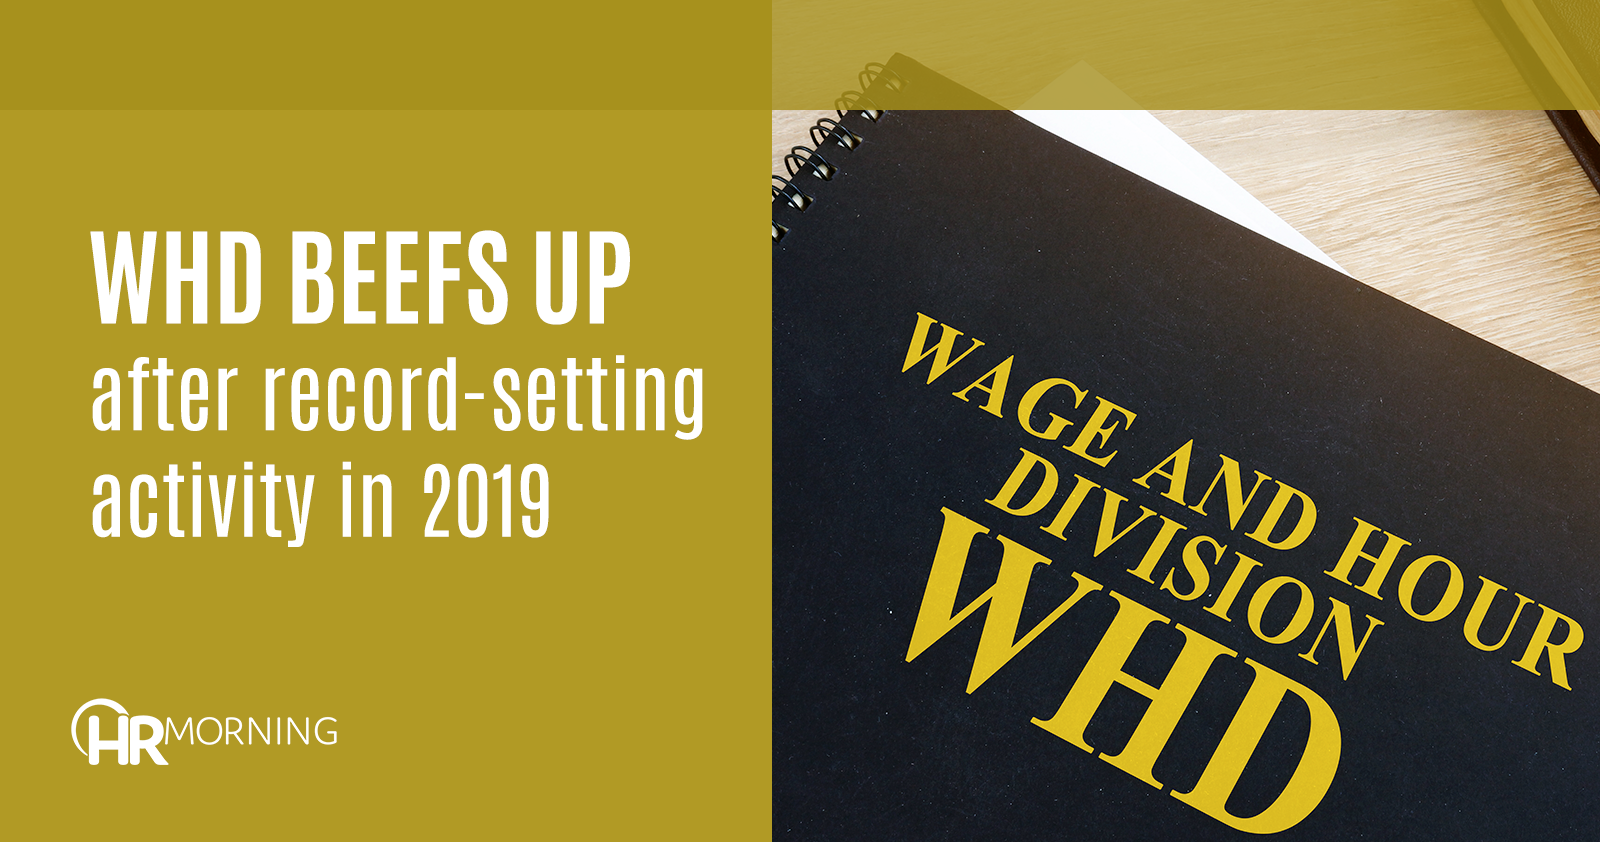 whd beefs up after record setting activity in 2019